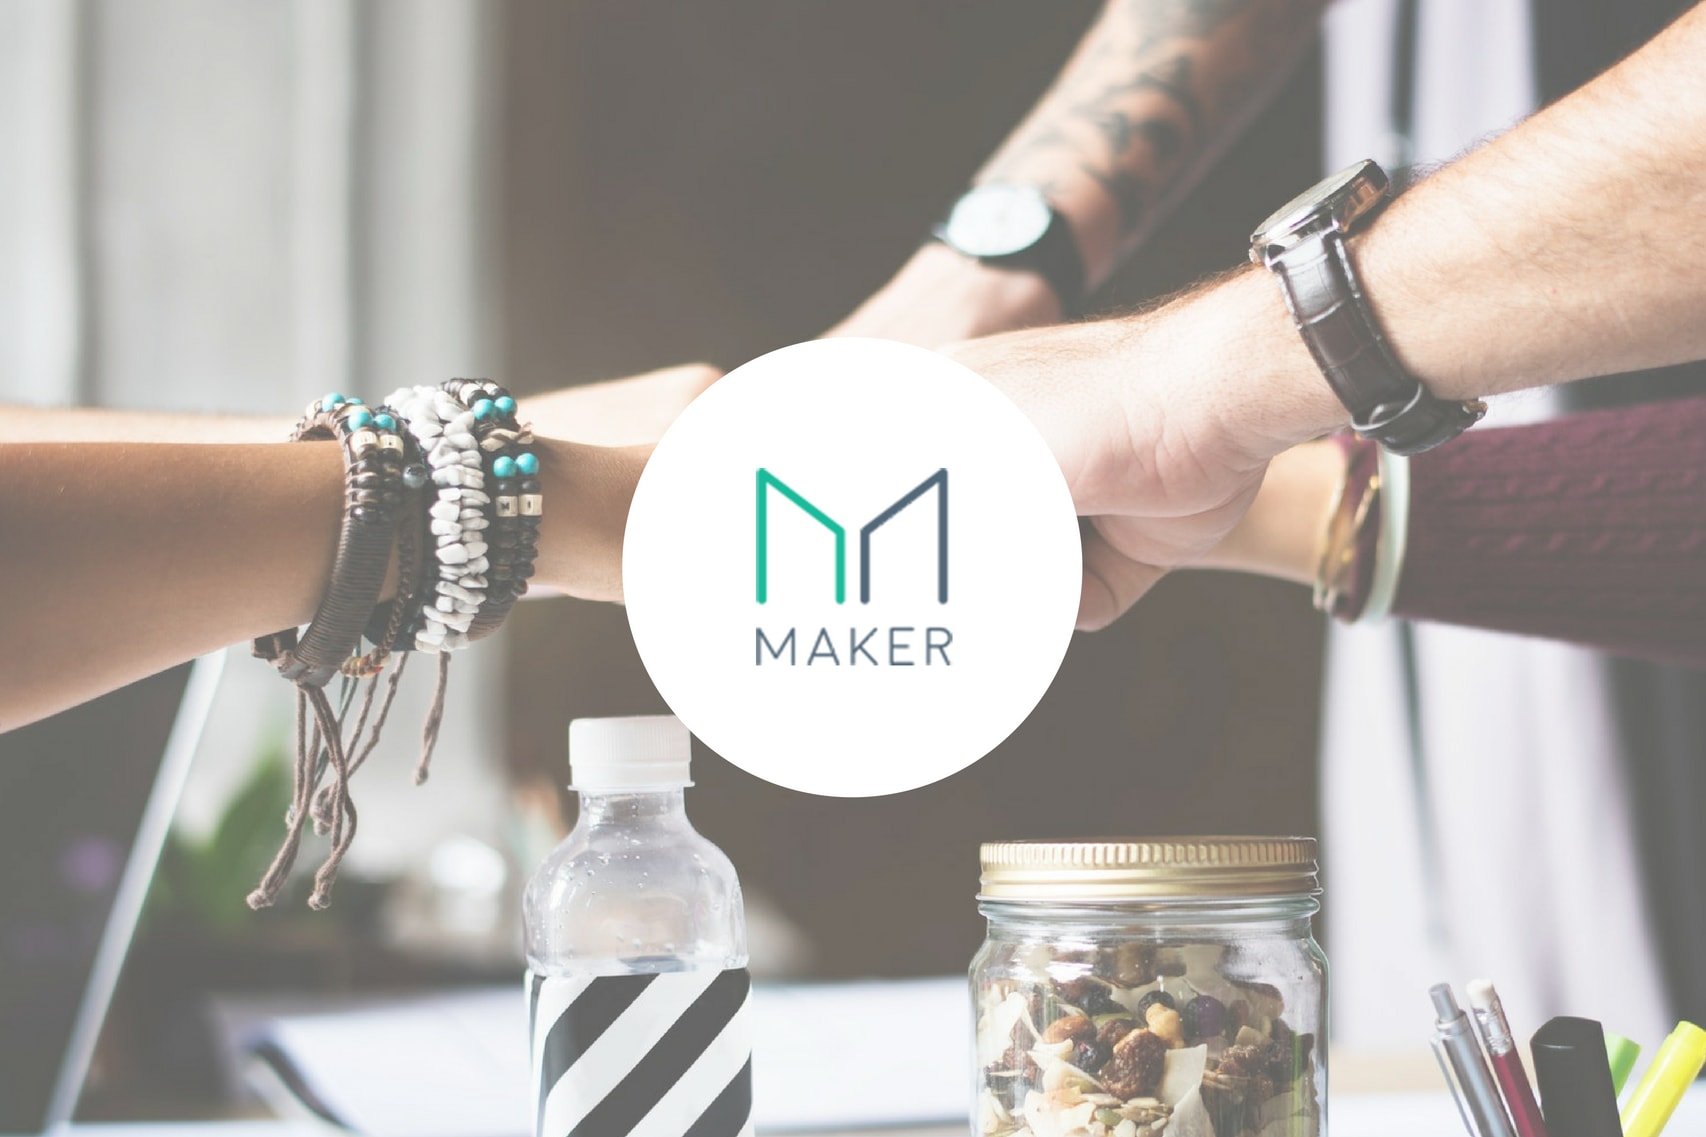 MakerDAO and TradeShift